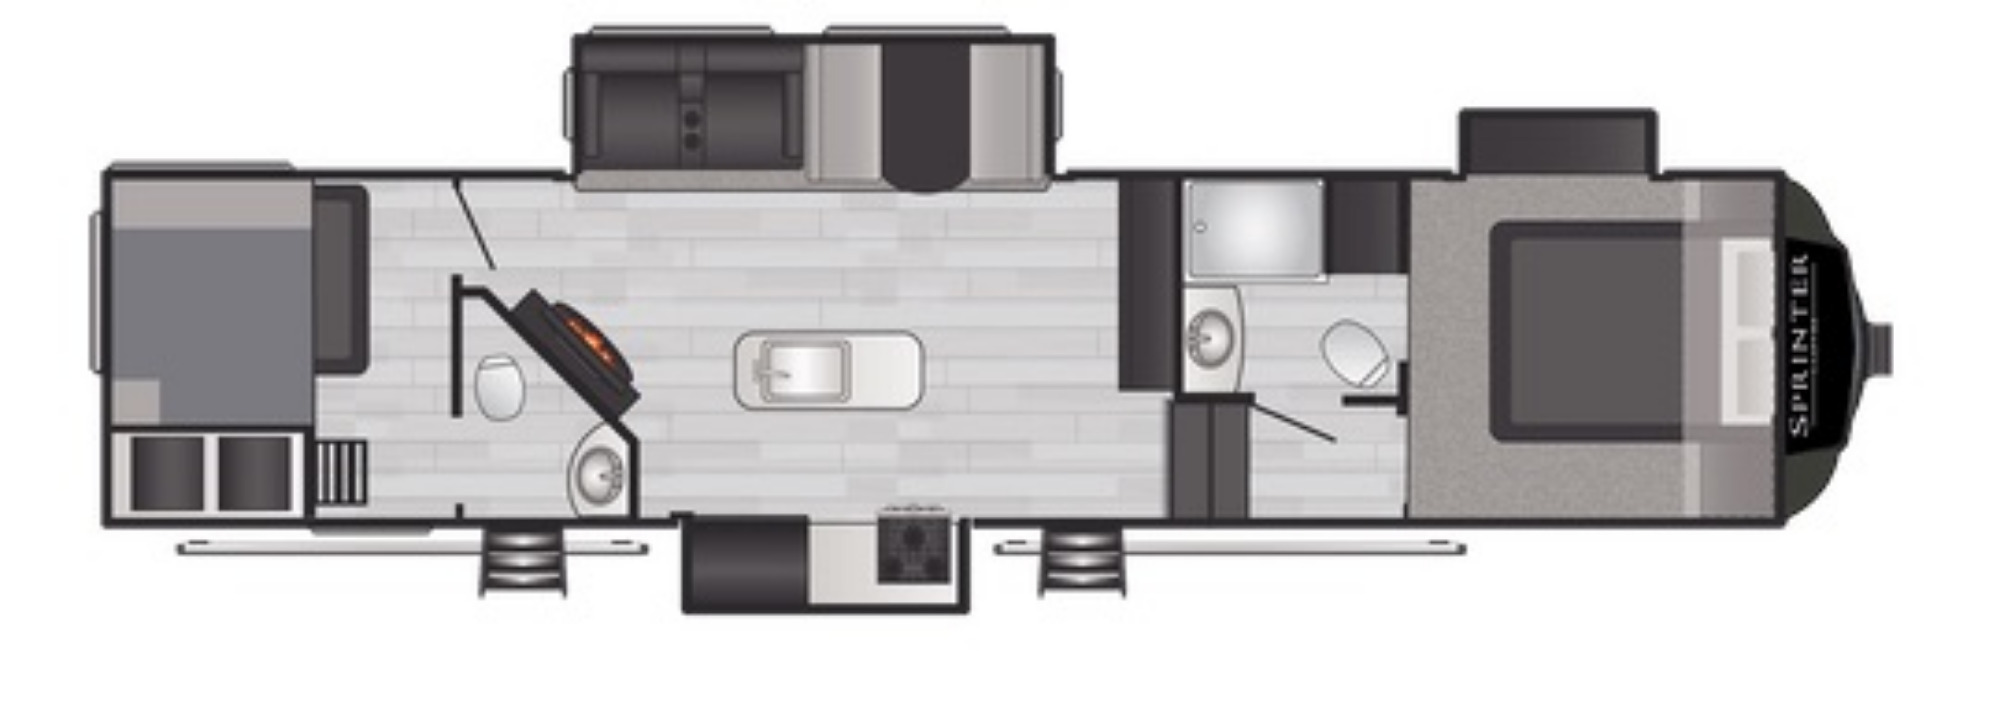 View Floor Plan for 2021 KEYSTONE SPRINTER 35BH